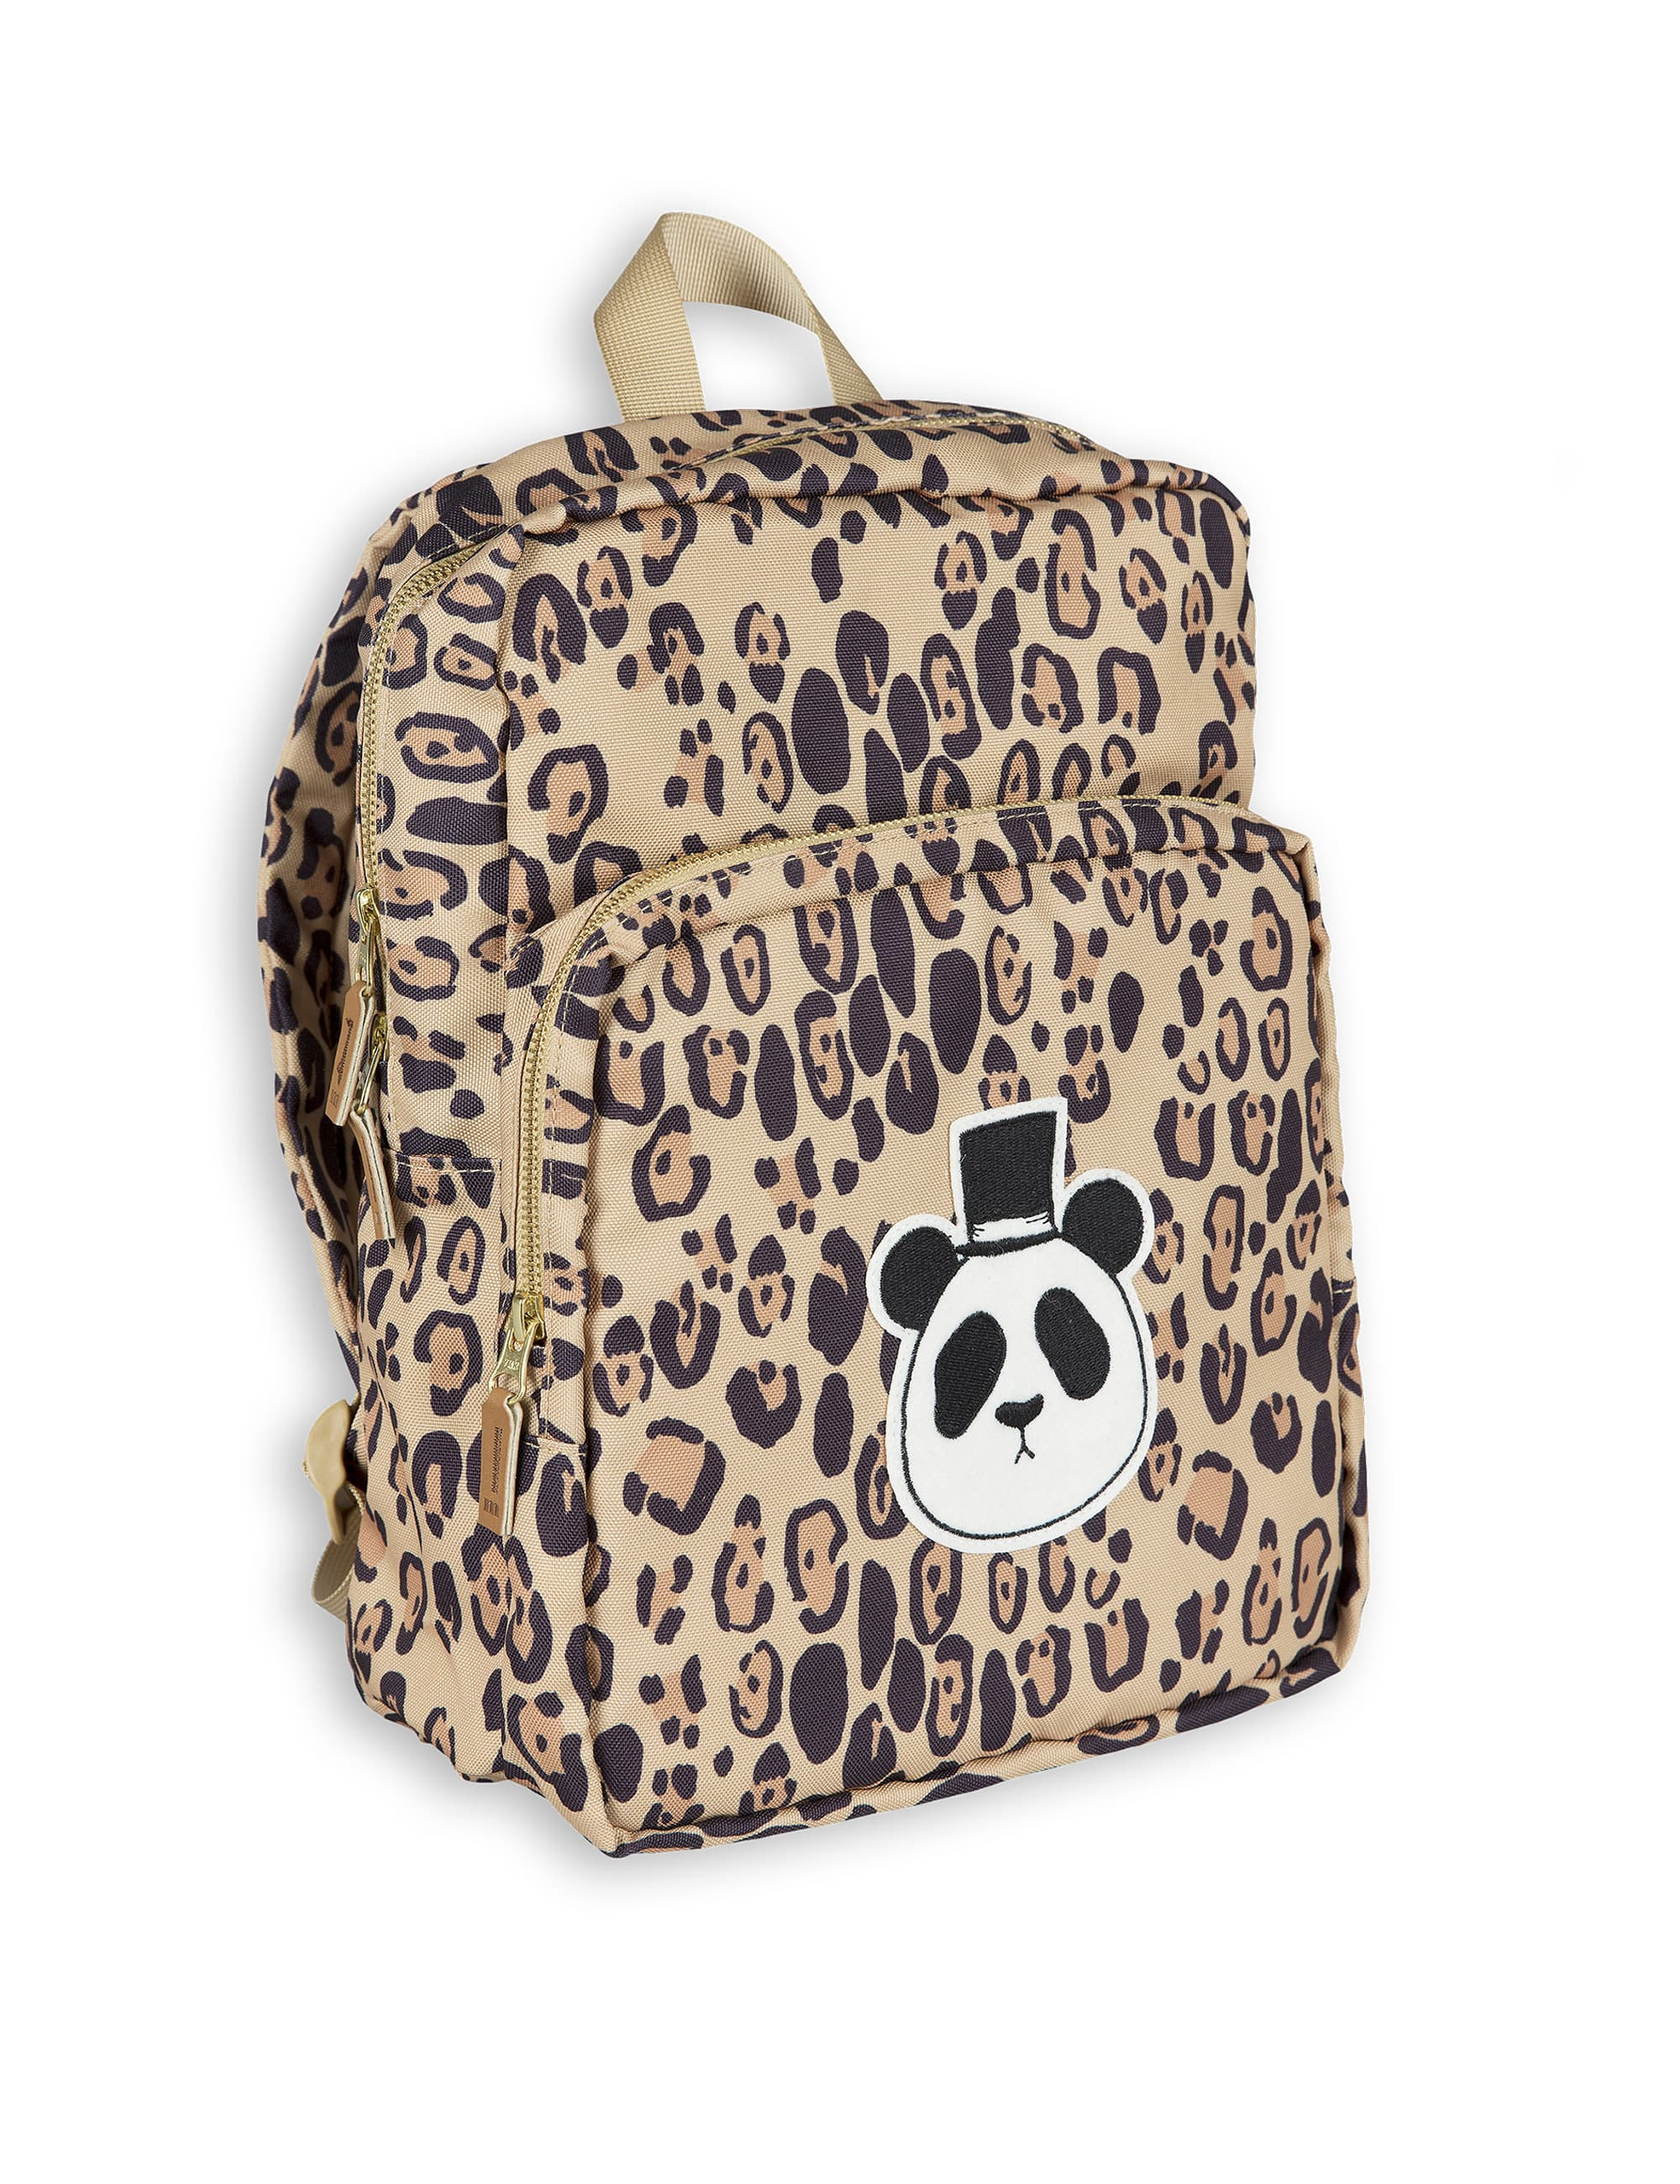 1776010113 1 mini rodini panda backpack beige